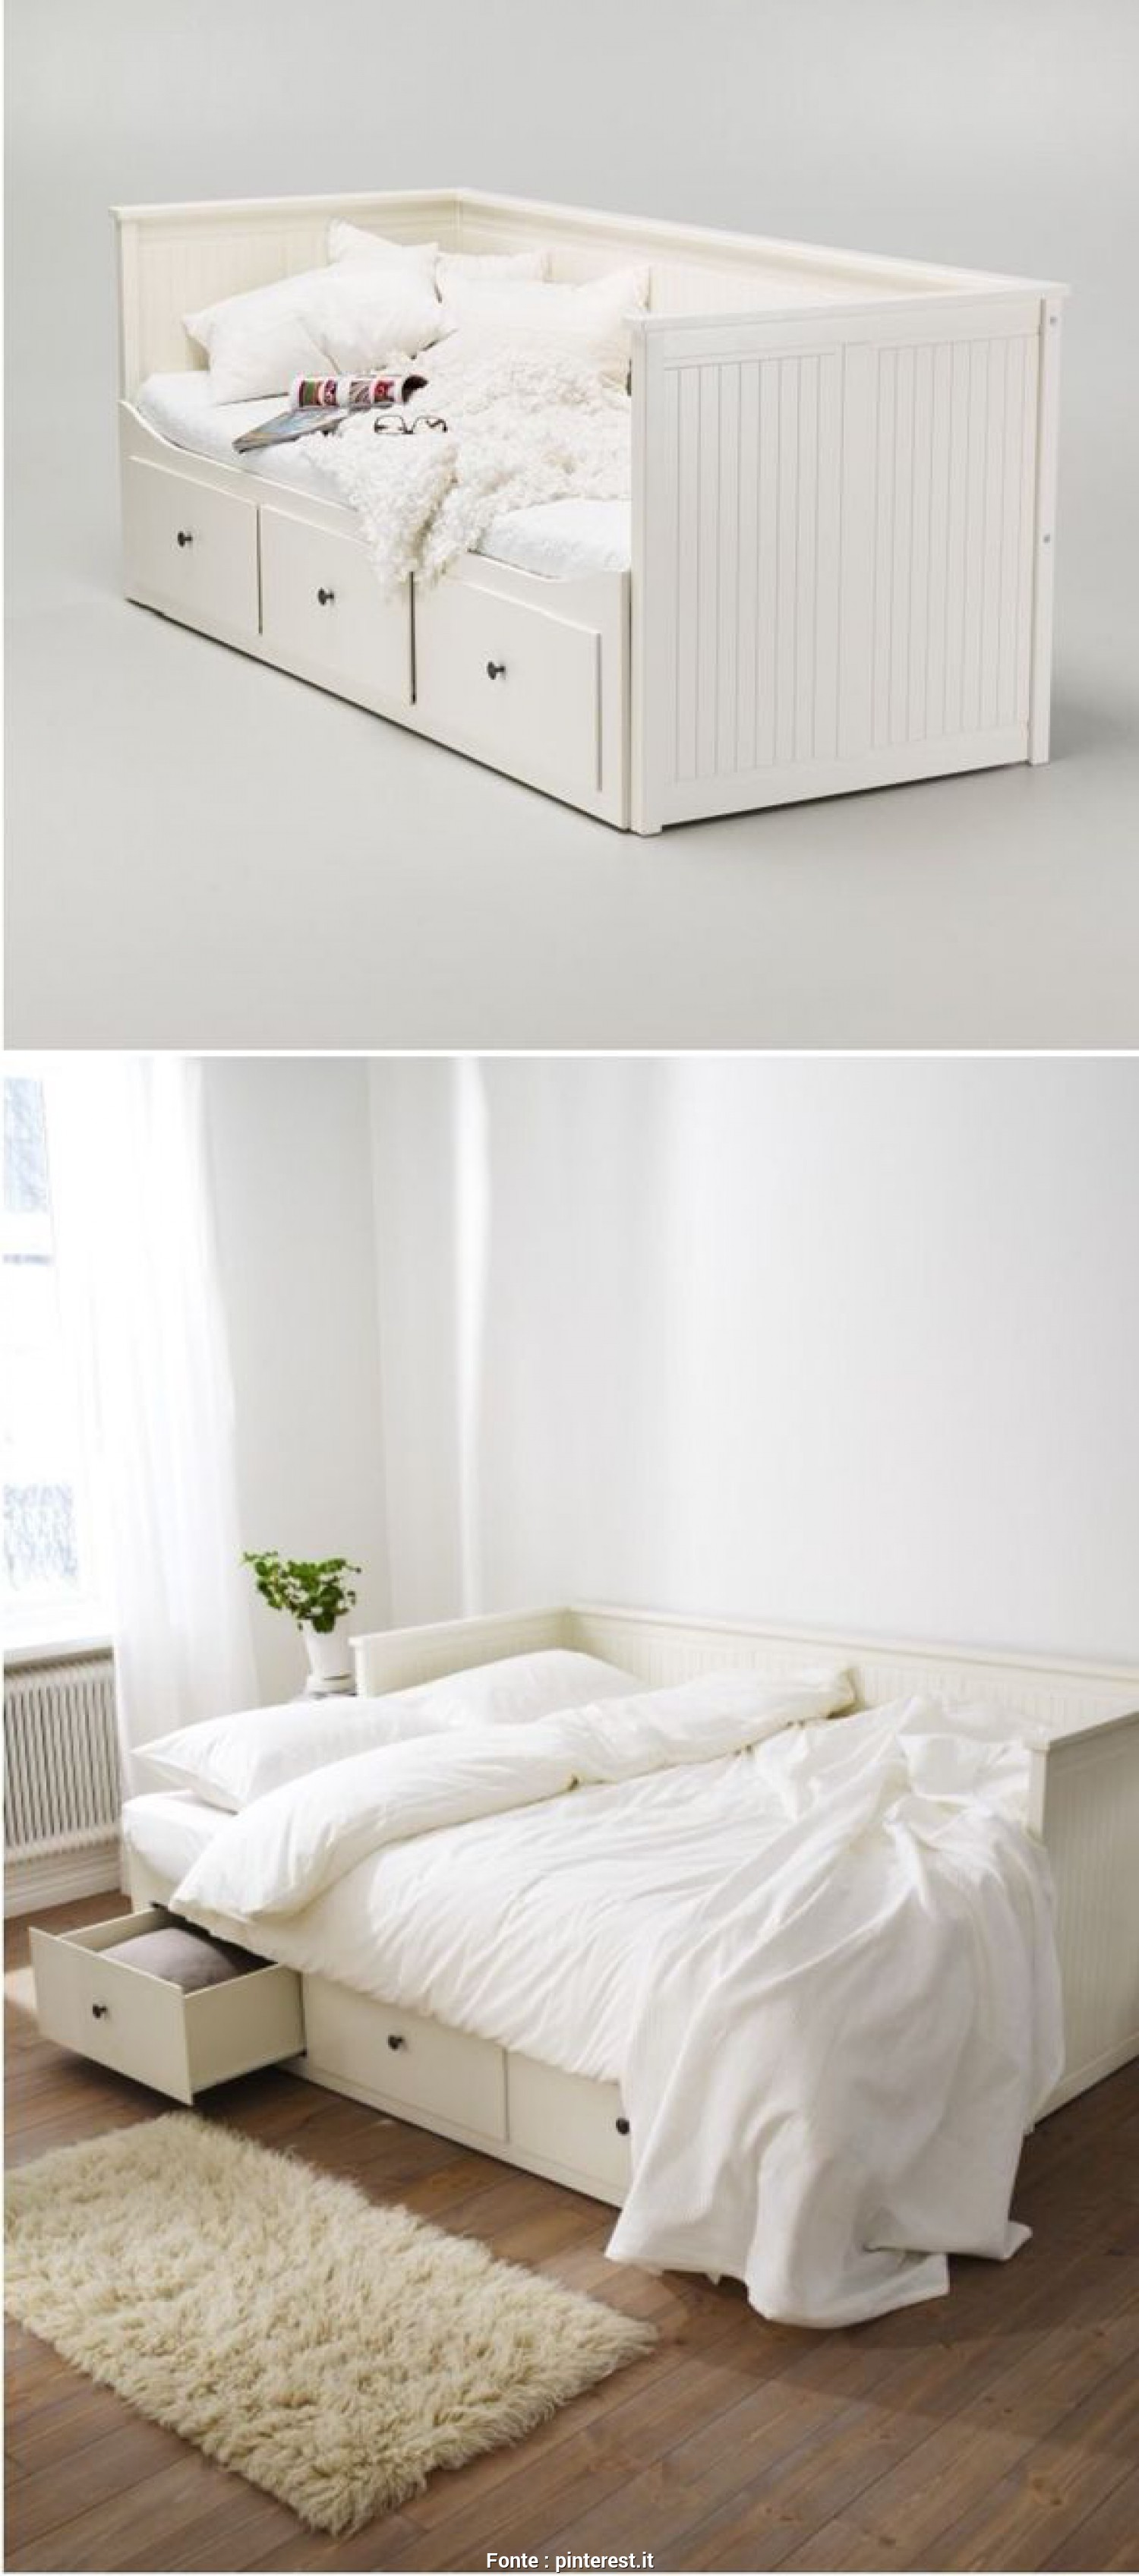 Hemnes Letto Ikea, Affascinante Another Office/Guest Room Solution IKEA Hemnes, Bed Camera, Divano Letto, Divano